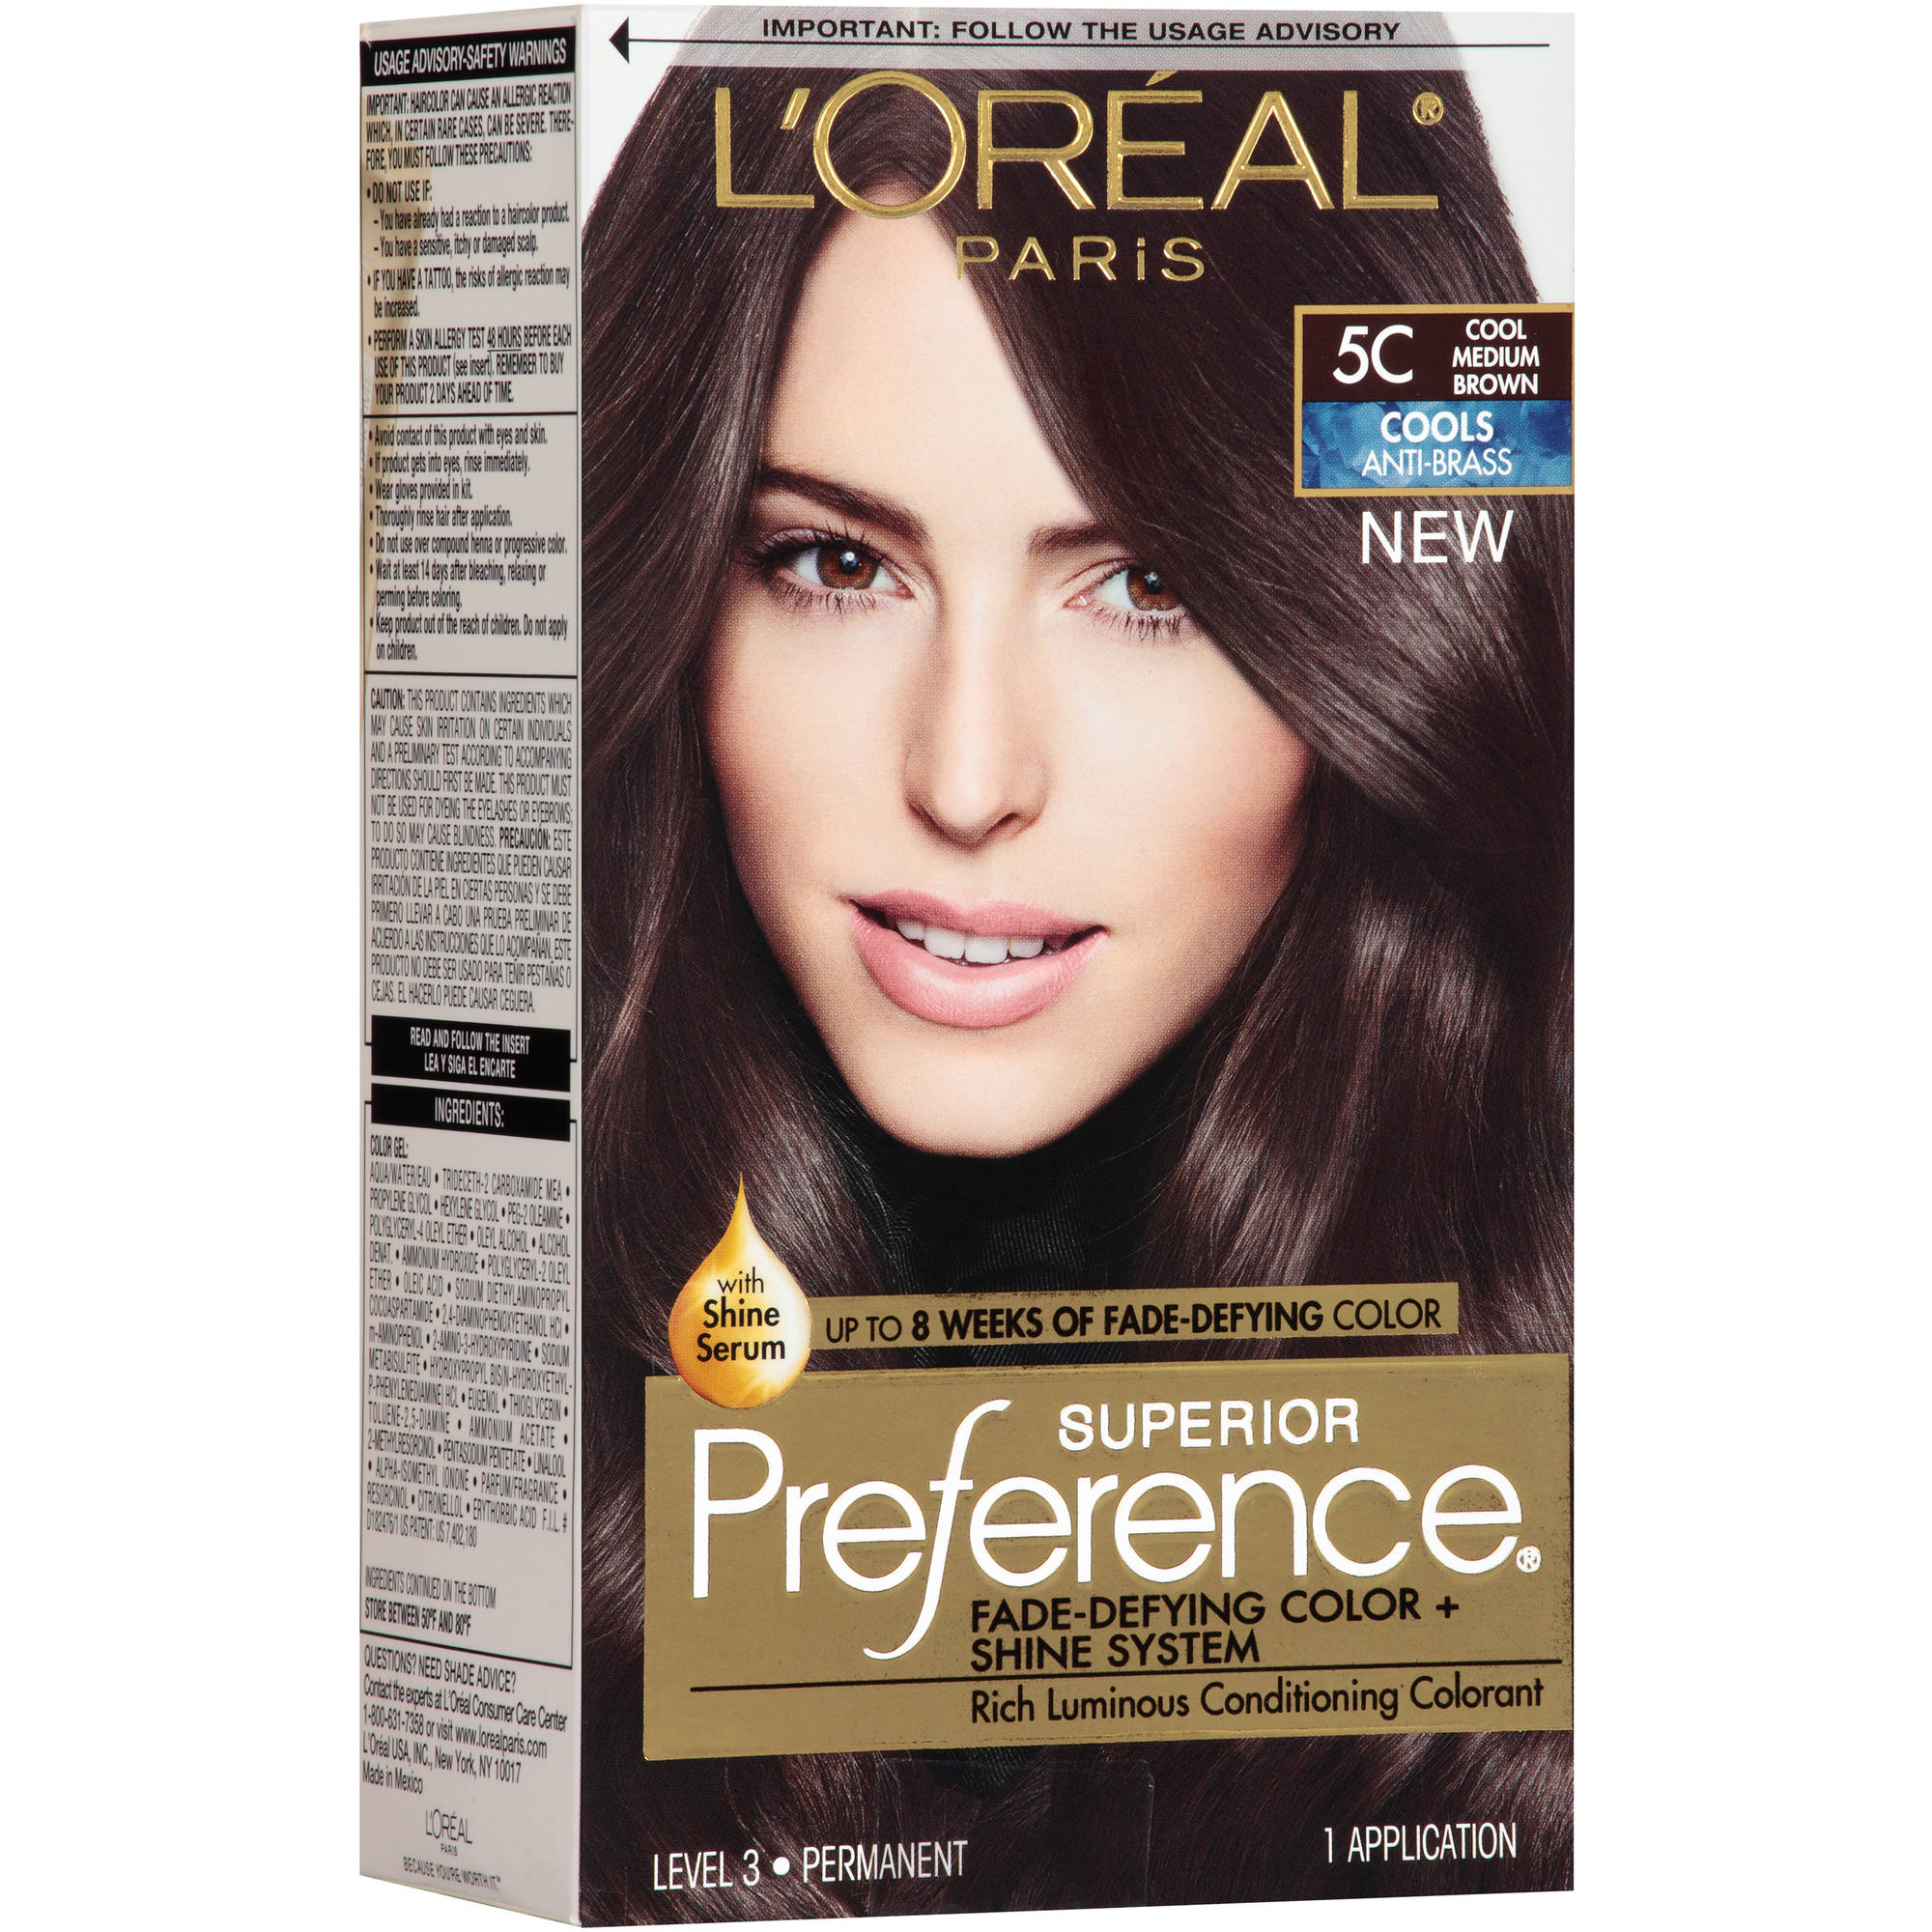 Loreal Paris Hair Color Reviews Loreal Paris Hair Color Tips